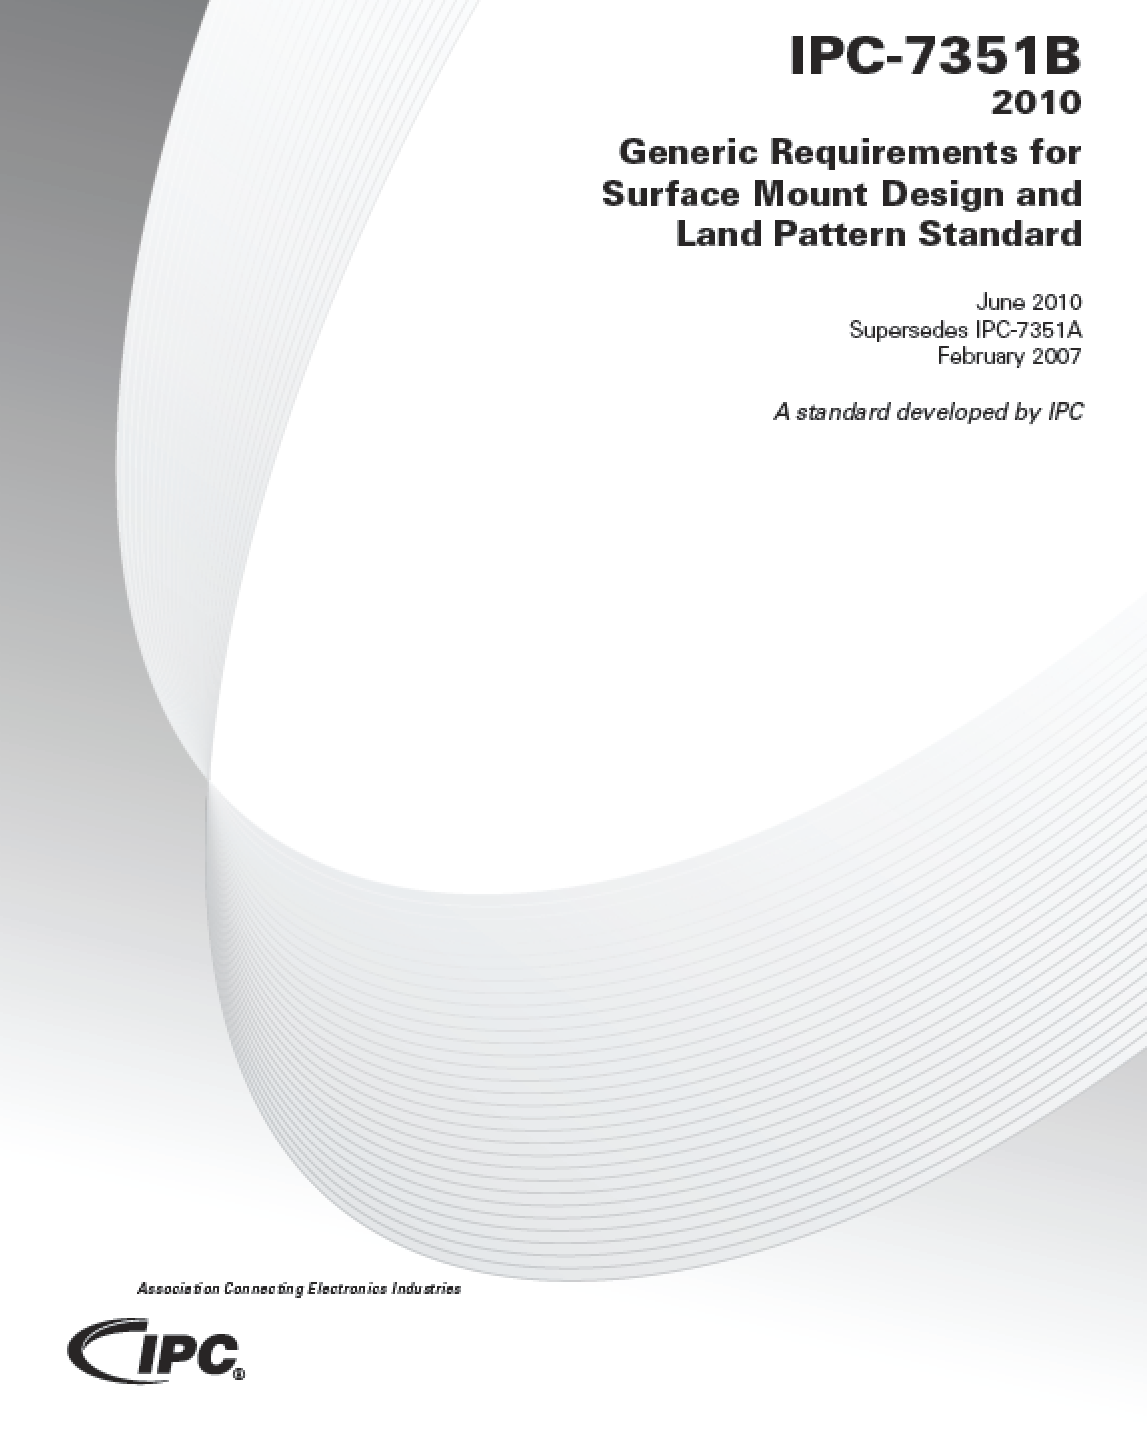 IPC-7351B:Generic Requirements for Surface Mount Design and Land Pattern Standard